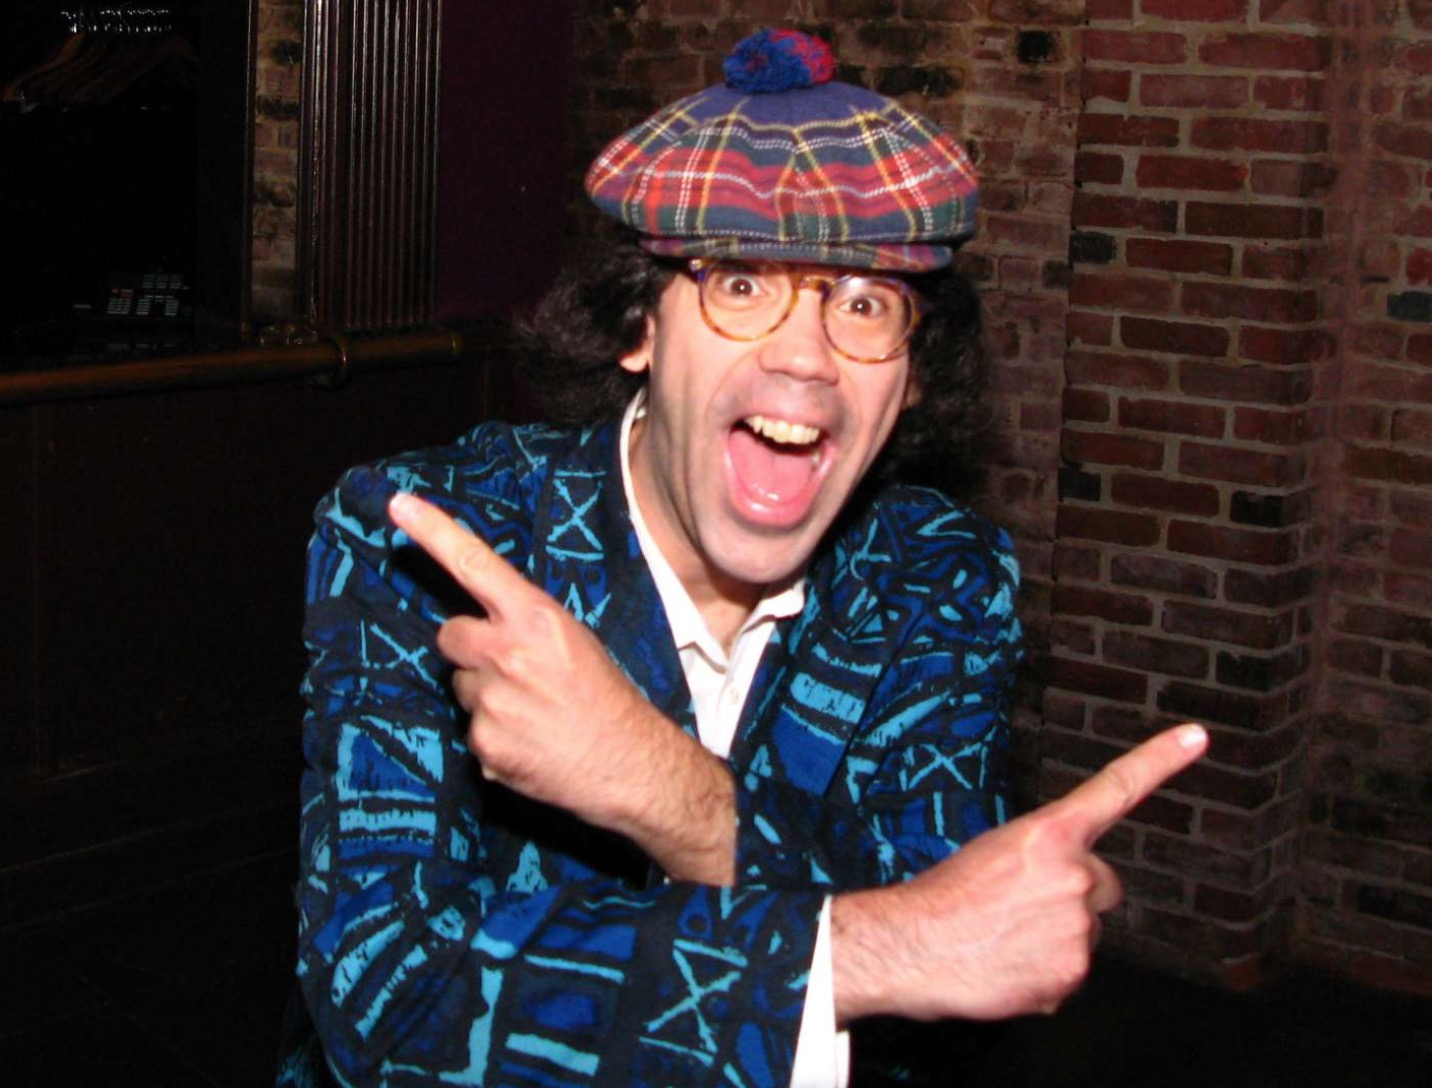 The 52-year old son of father (?) and mother(?) Nardwuar in 2020 photo. Nardwuar earned a  million dollar salary - leaving the net worth at  million in 2020